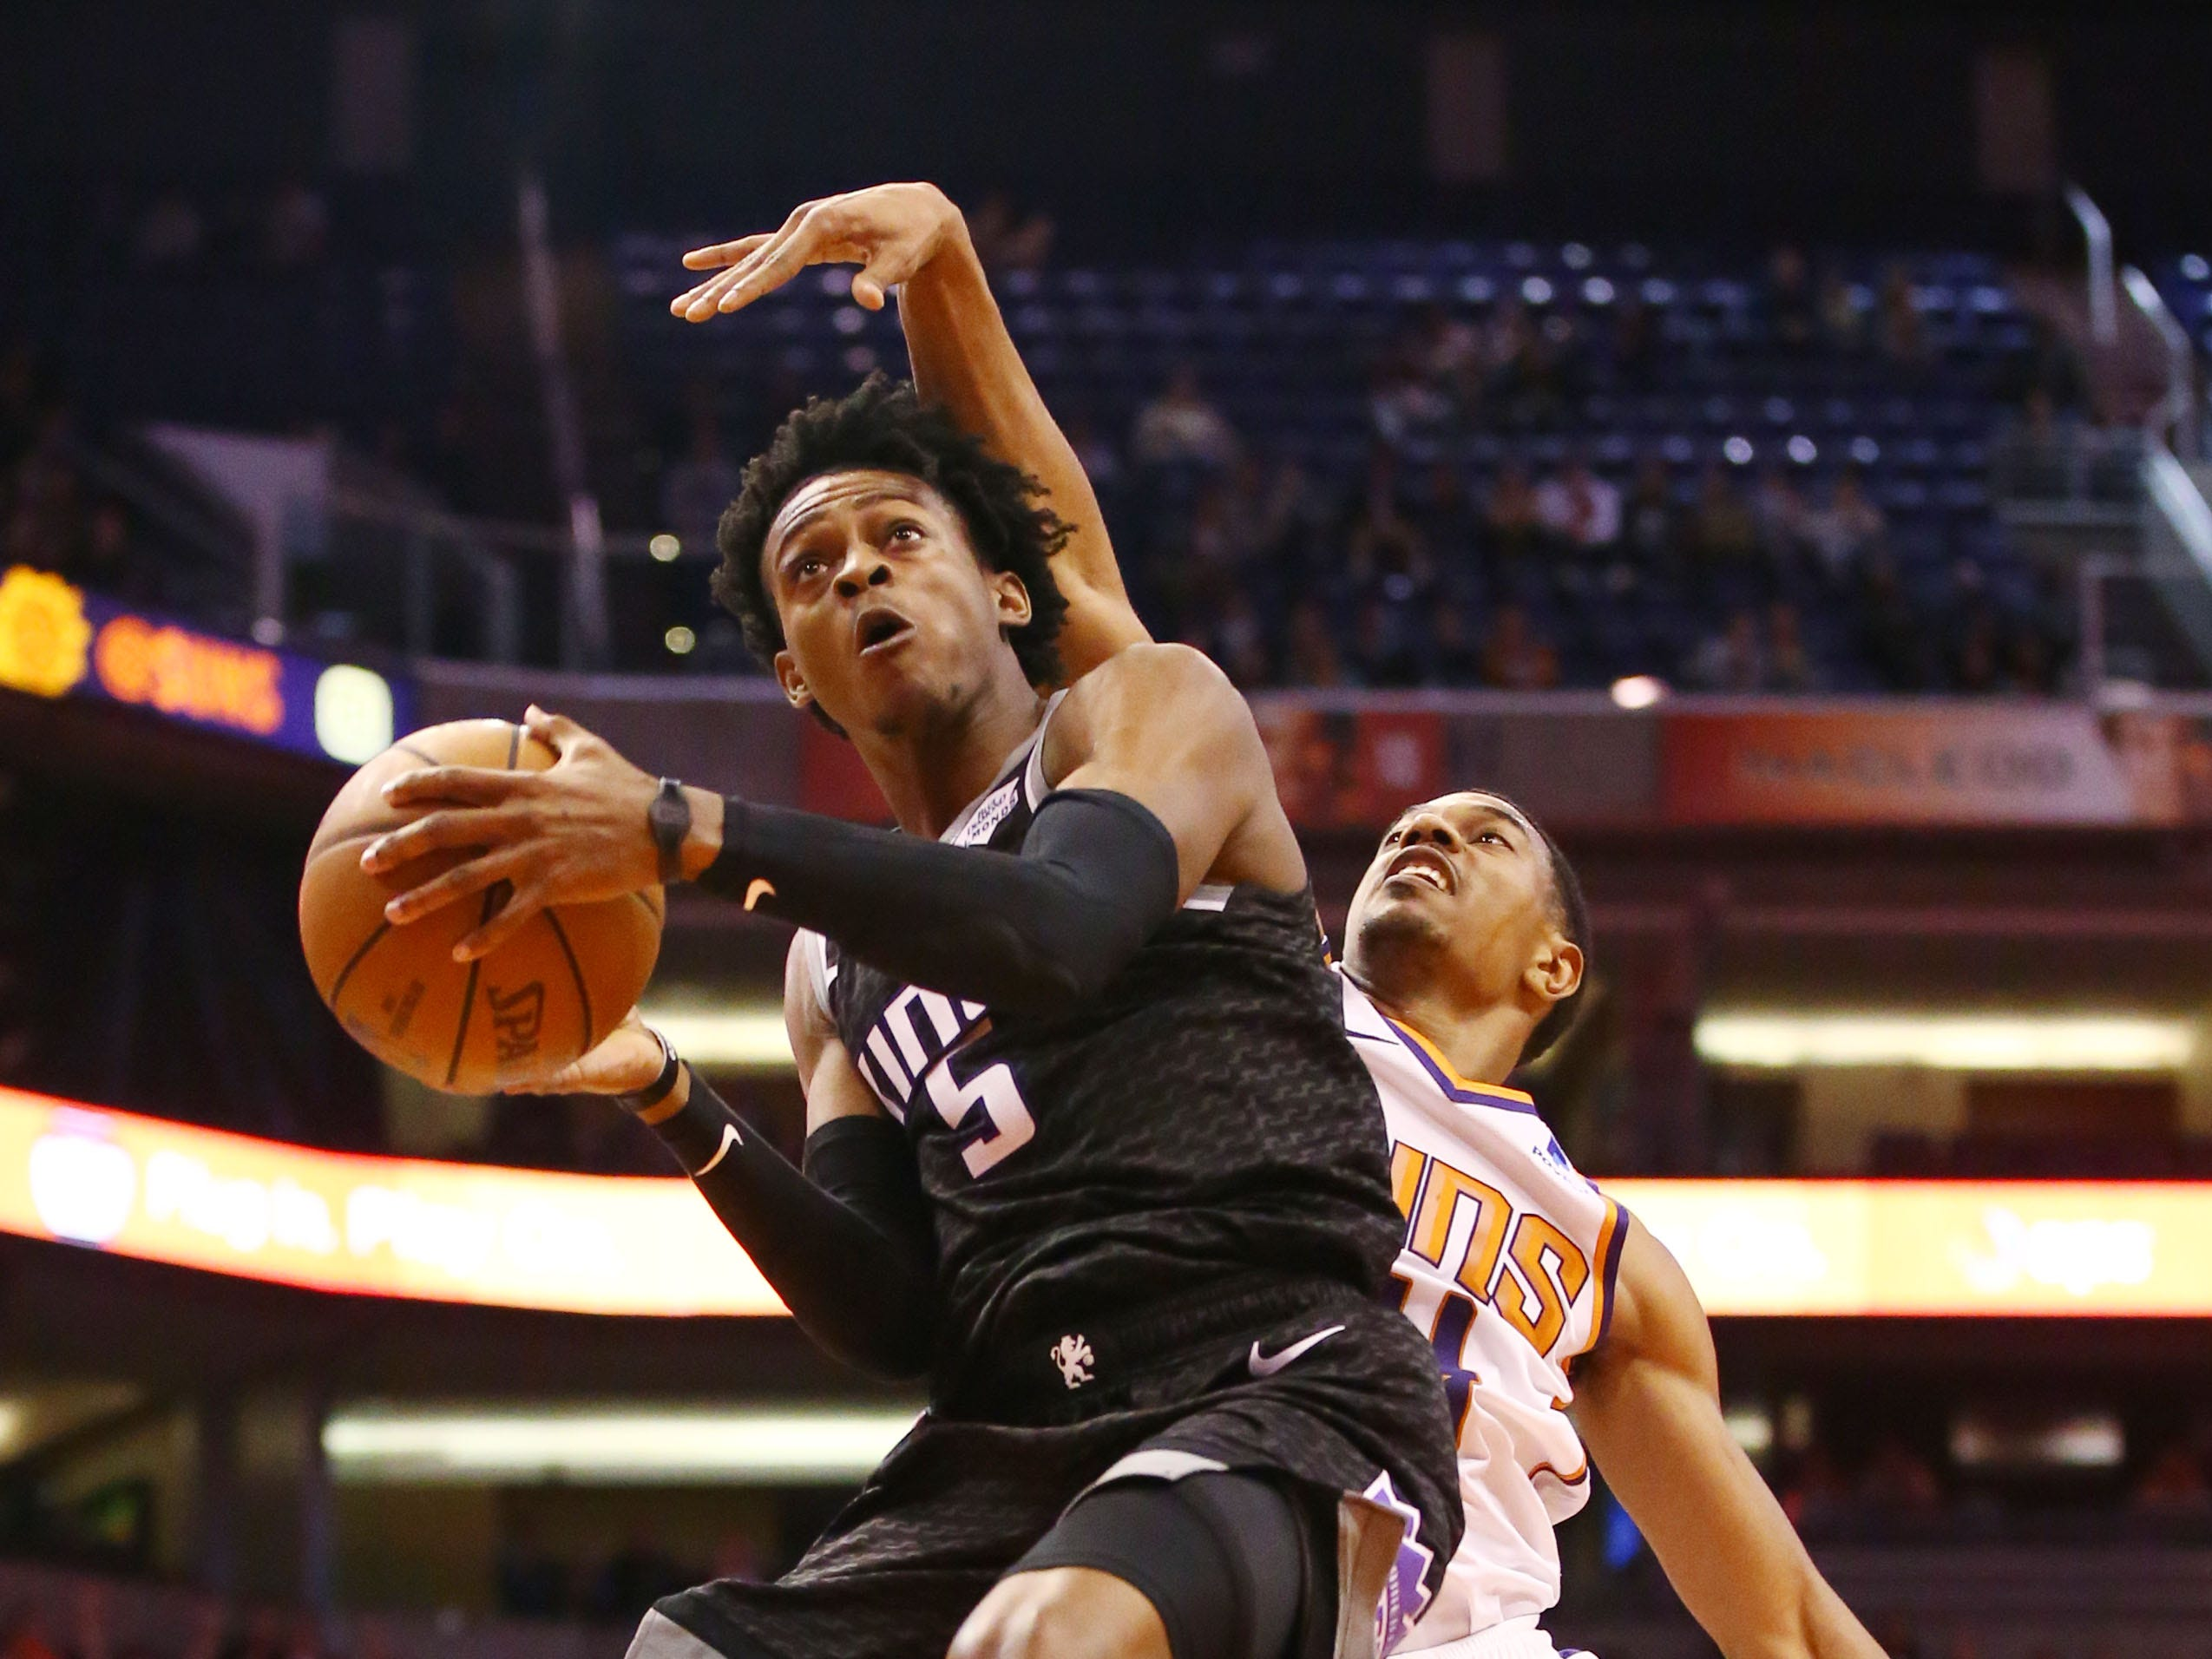 Phoenix Suns forward De'Anthony Melton pressures the shot by Sacramento Kings guard De'Aaron Fox in the second half on Jan. 8 at Talking Stick Resort Arena.